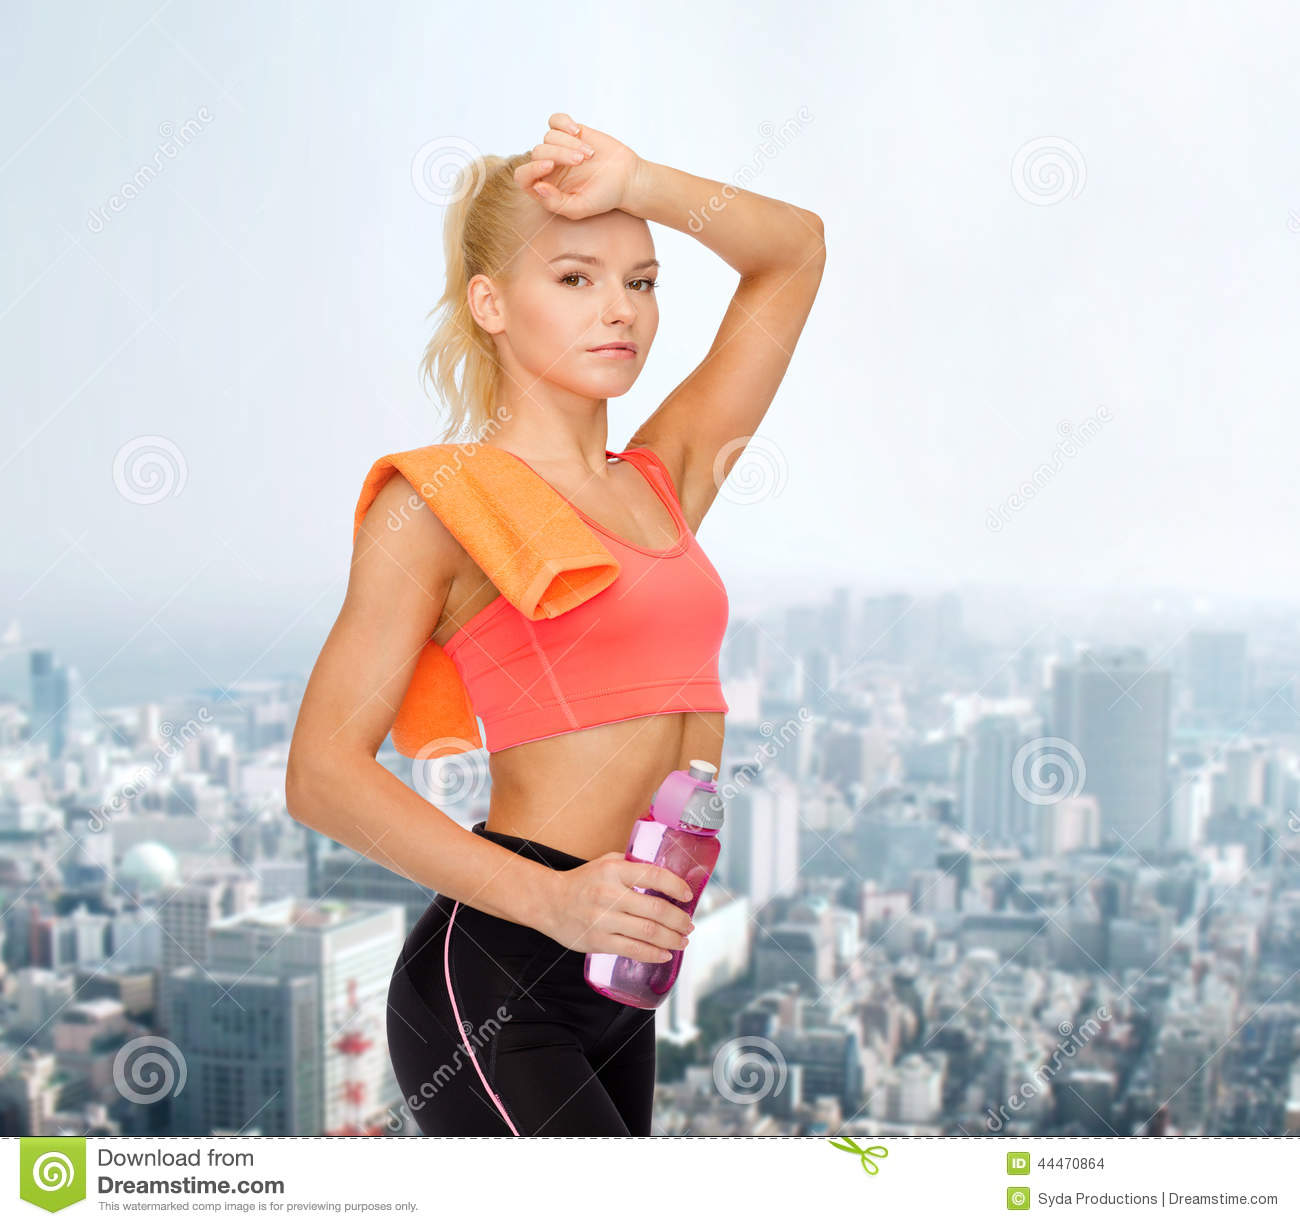 Sweat Towel Water Bottle: Tired Sporty Woman With Towel And Water Bottle Stock Photo